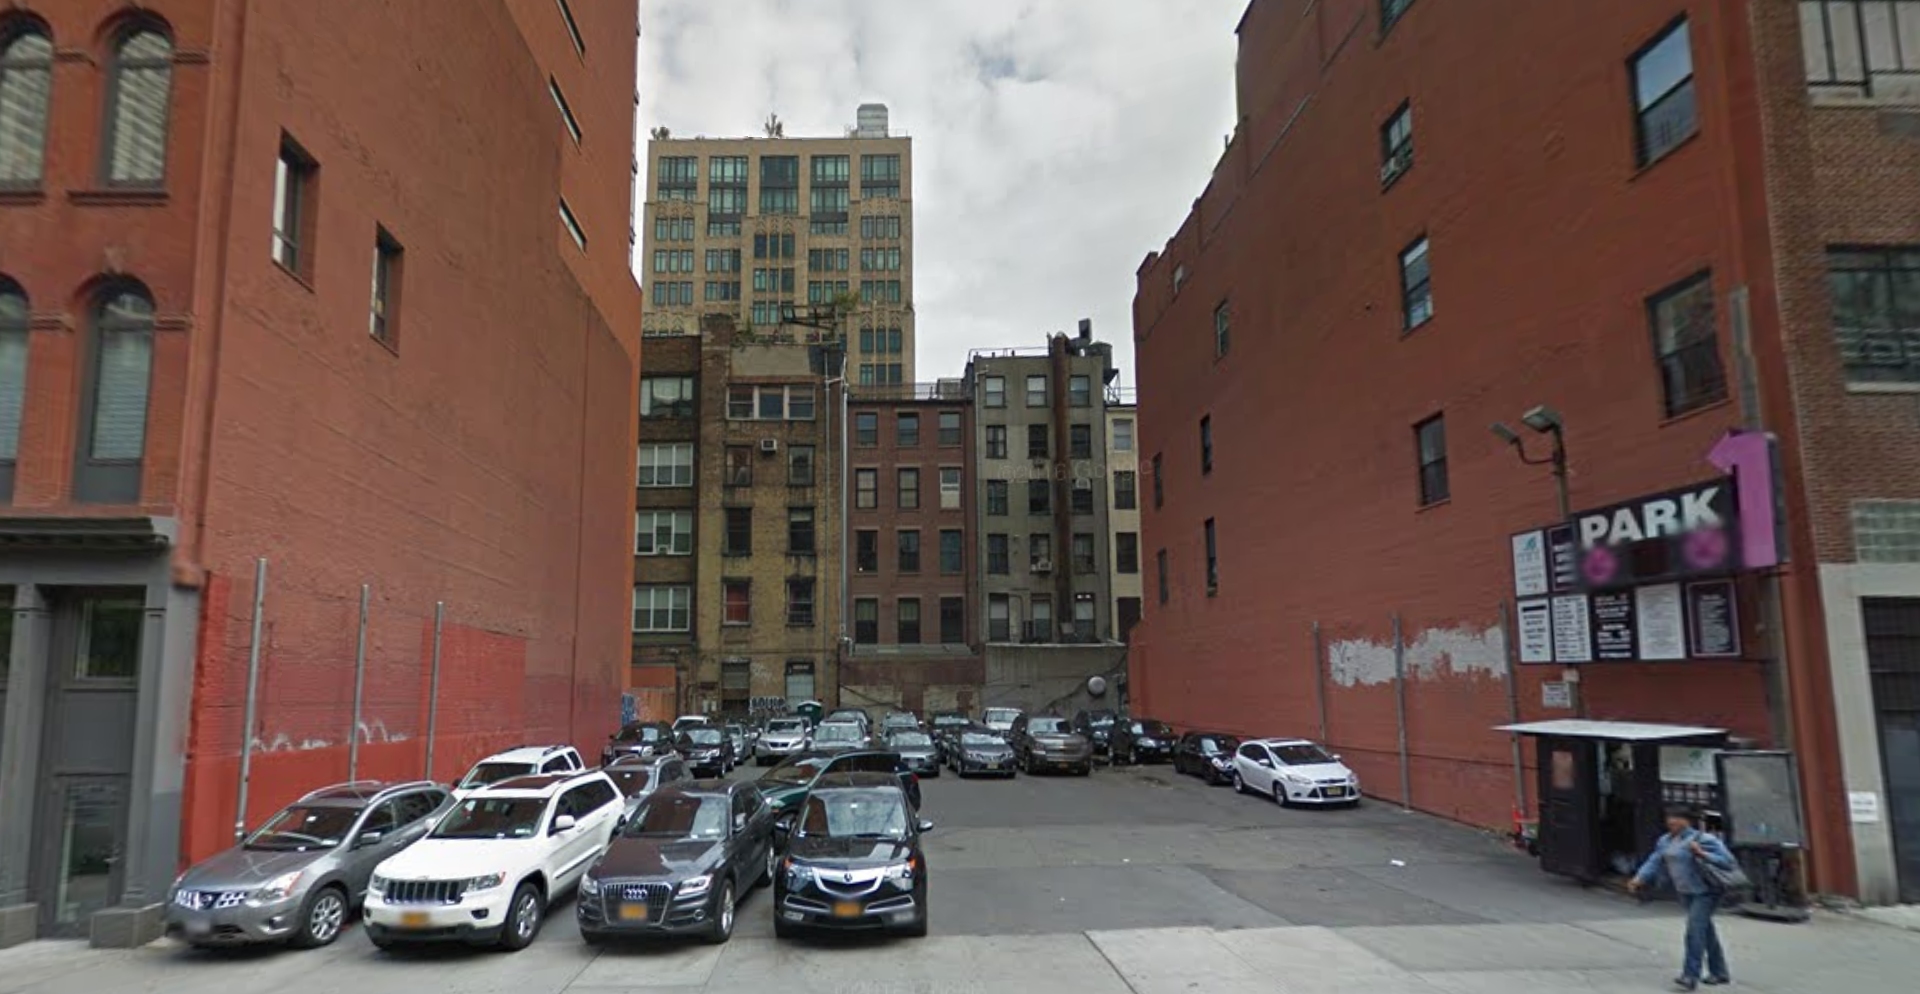 86 Warren Street, image via Google Maps